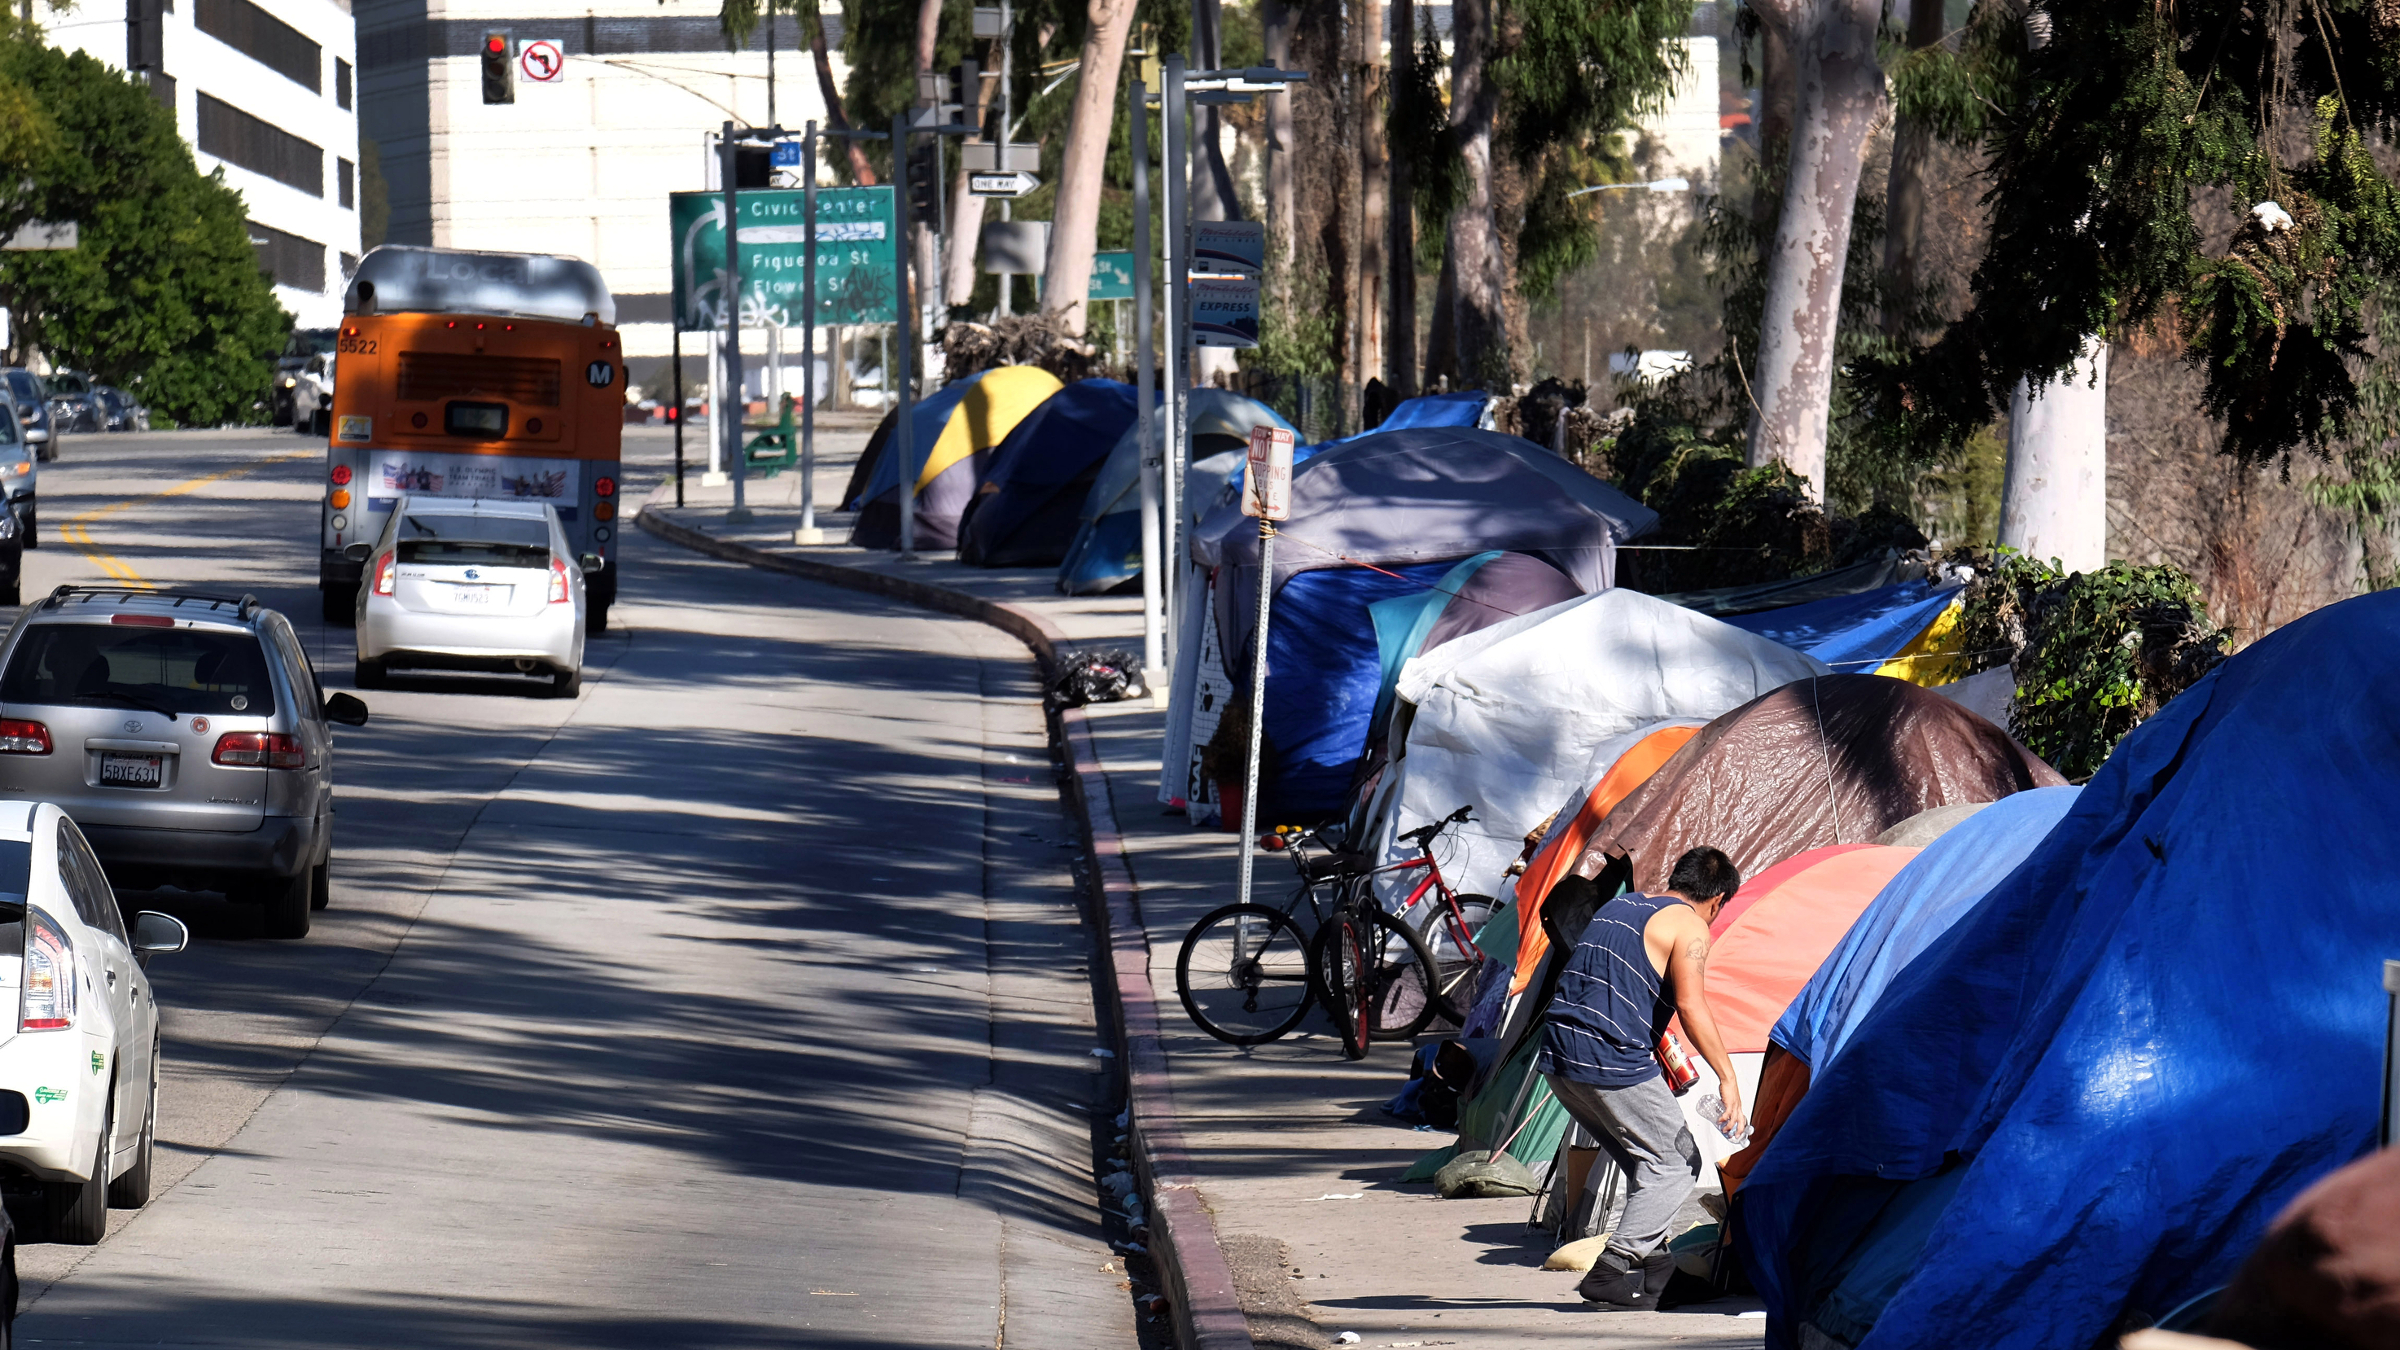 FILE - This Tuesday, Jan. 26, 2016 file photo shows tents from a homeless encampment line a street in downtown Los Angeles.With California's homeless situation at a crisis level, state officials are negotiating a plan to provide up to $2 billion to help cities build permanent shelters that would get mentally ill people off the street.